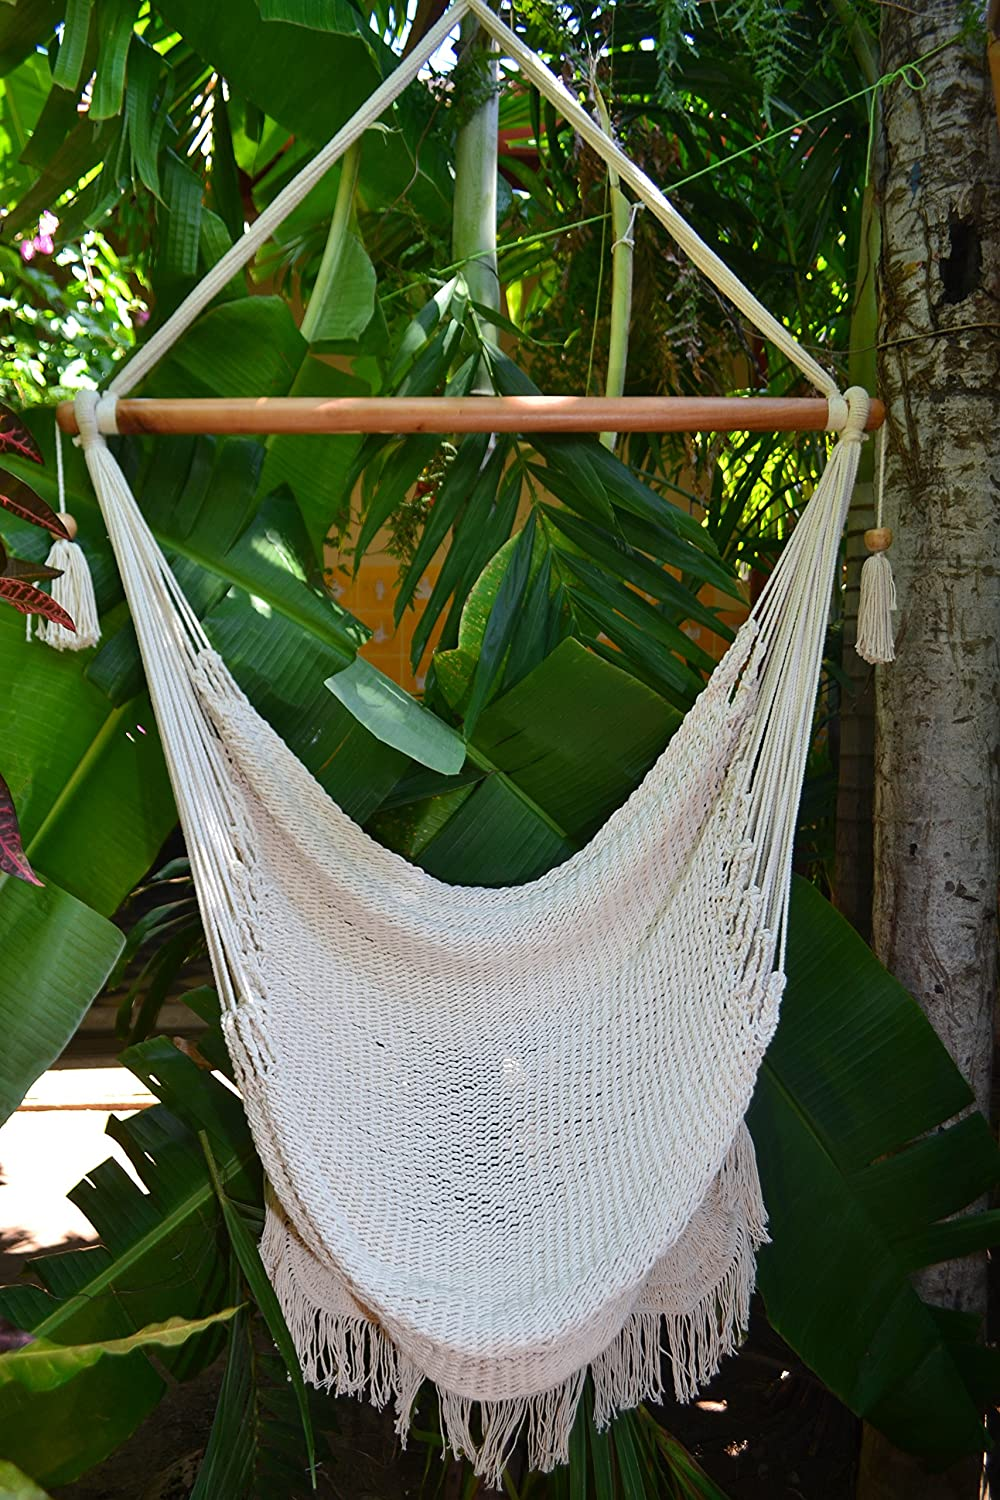 Attrayant Amazon.com: Hanging Hammock Chair Hanging Chair Cotton Rope Porch Swing  Seat With Wood Stretcher Bar Organic Handmade Off White Indoor Or Outdoor  Chair ...